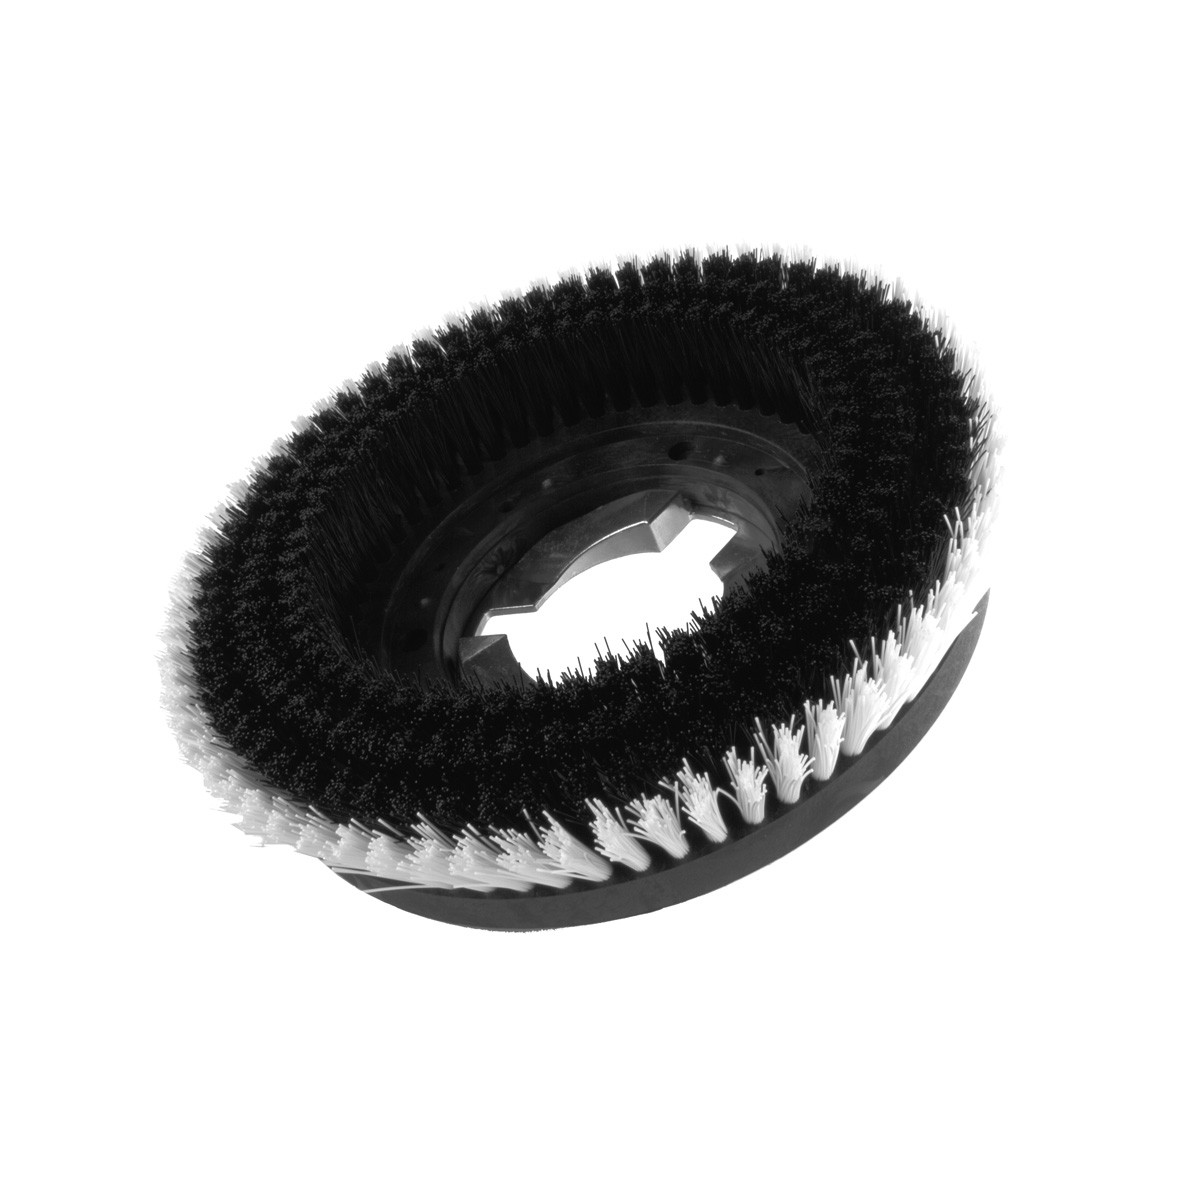 Rotary Carpet Scrubbing Brush For Use With 13 Quot Floor Buffers